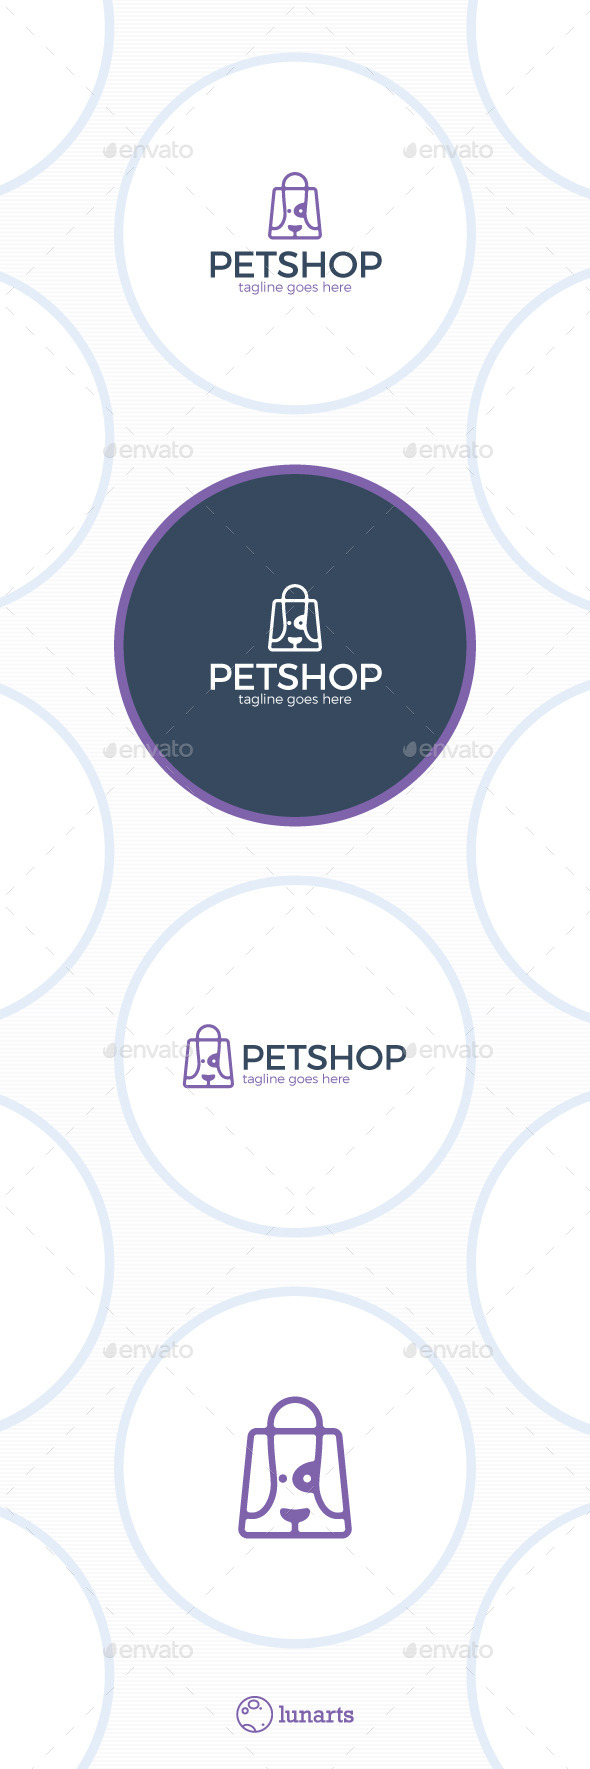 Pet Store Logo - Dog Bag